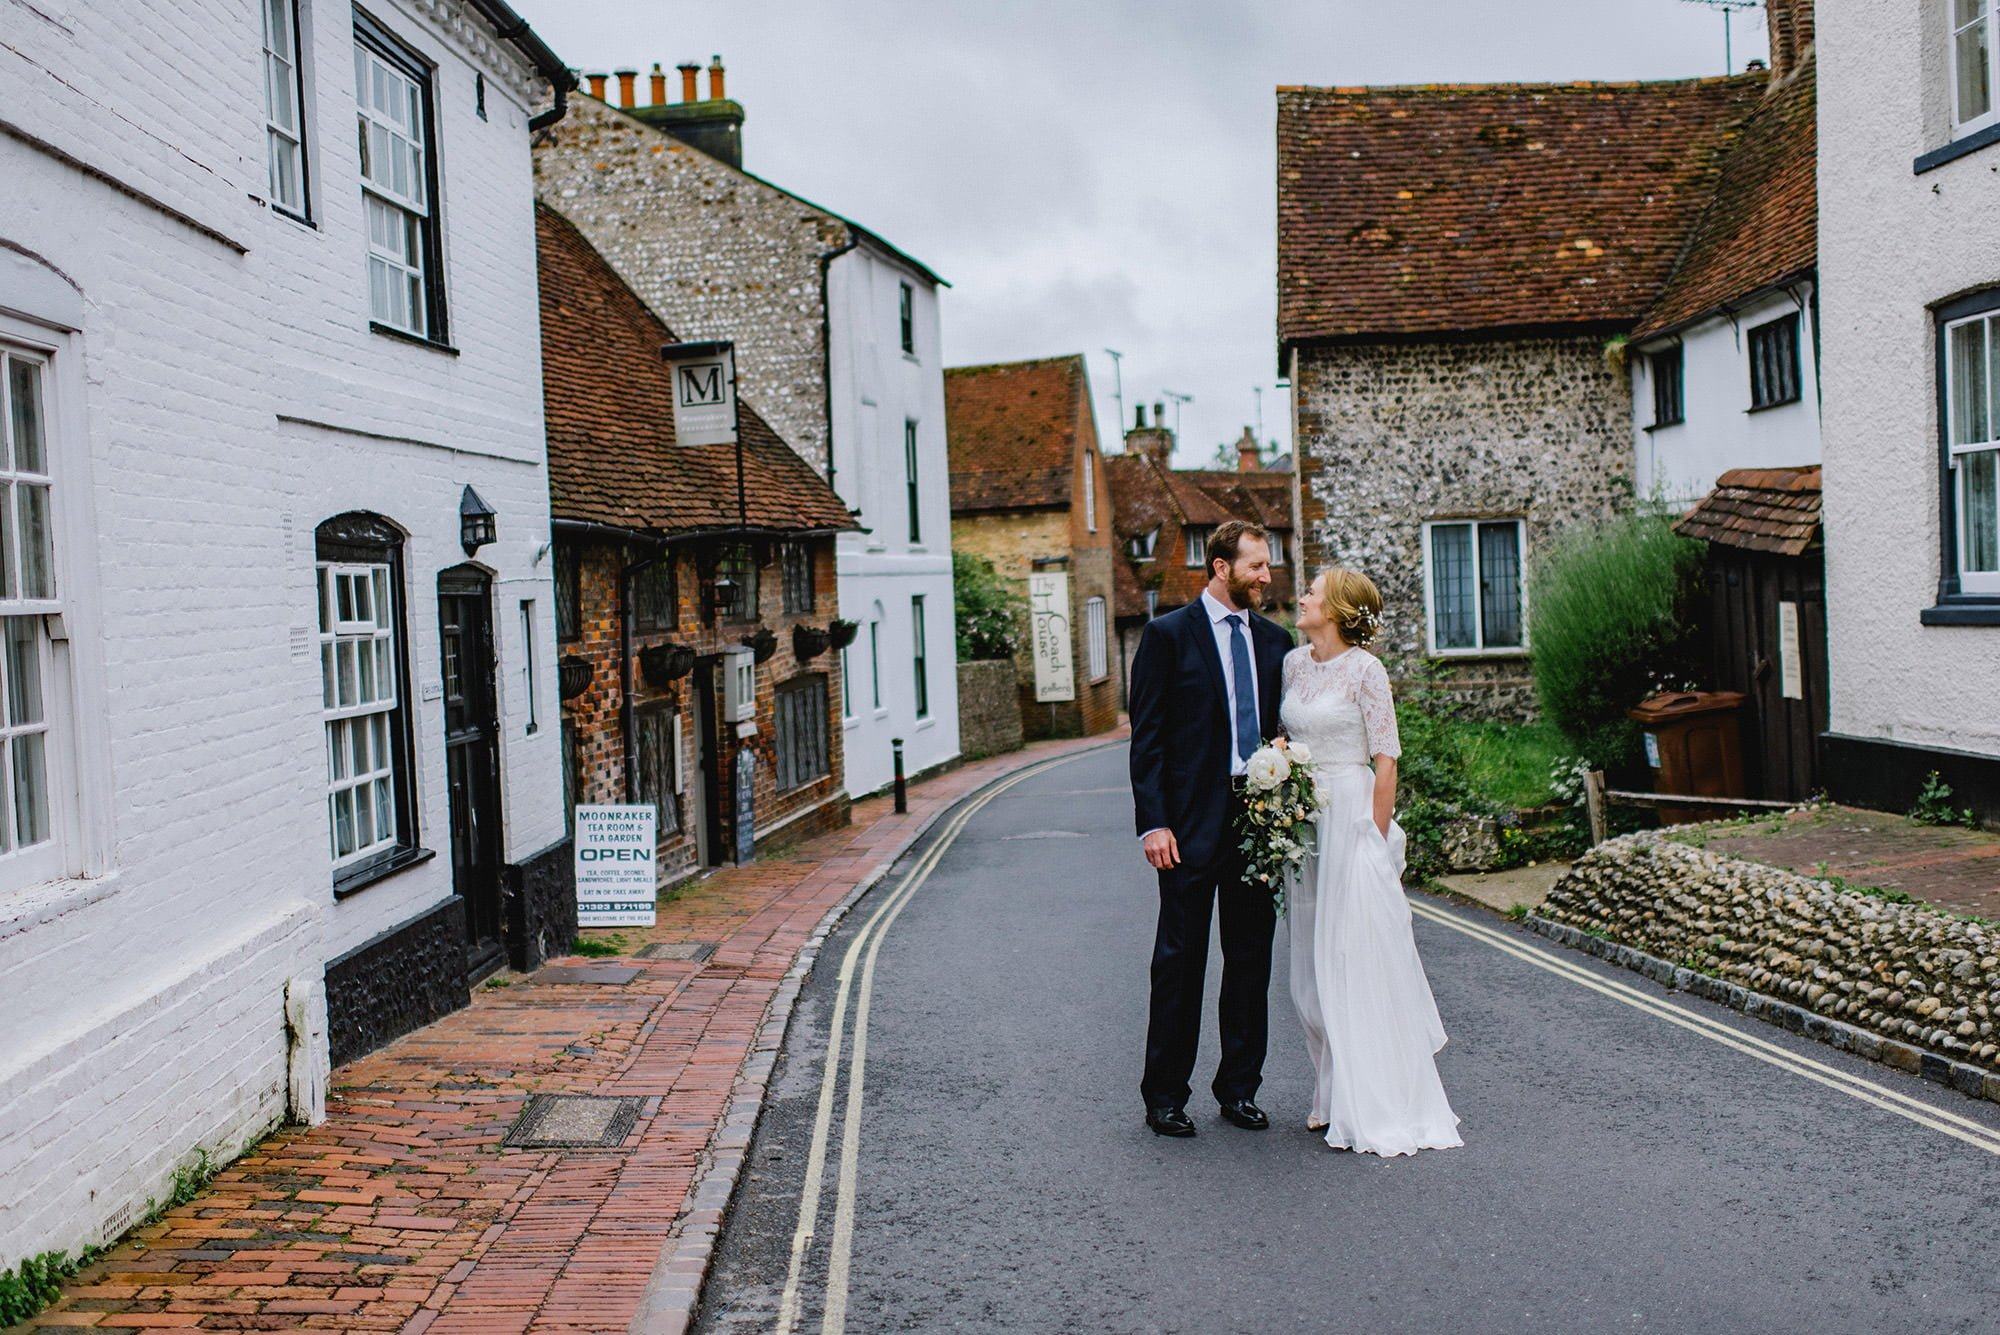 alfriston weddings, weddings in alfriston